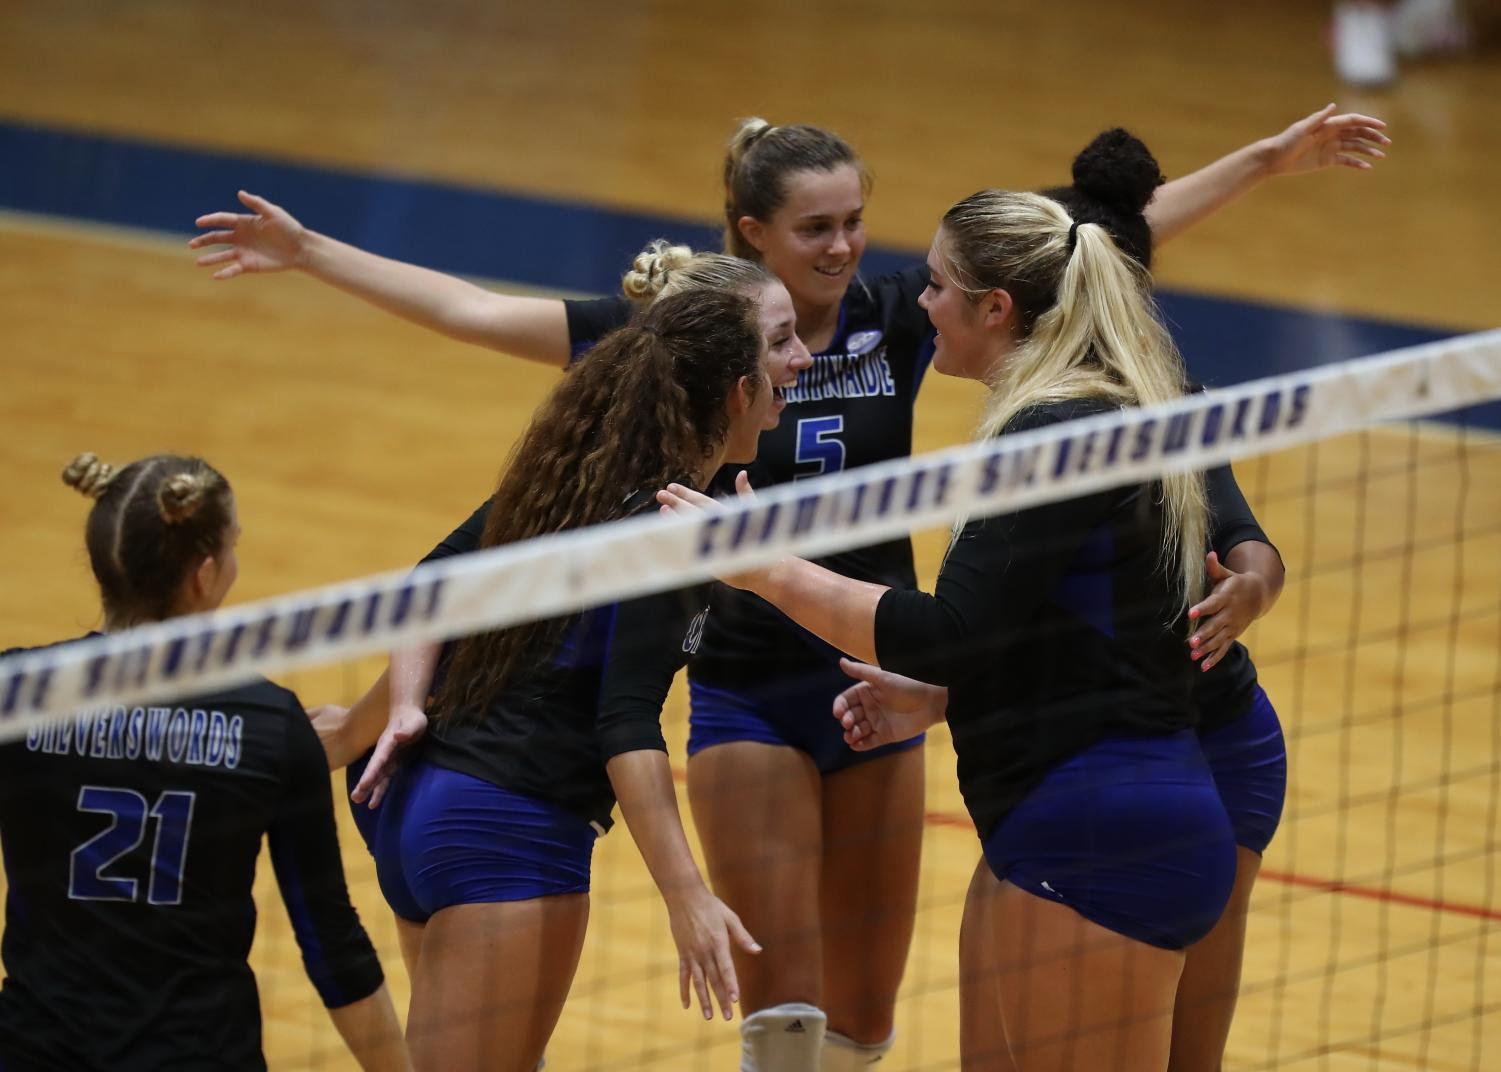 The CUH women's volleyball team is poised to make history this weekend.